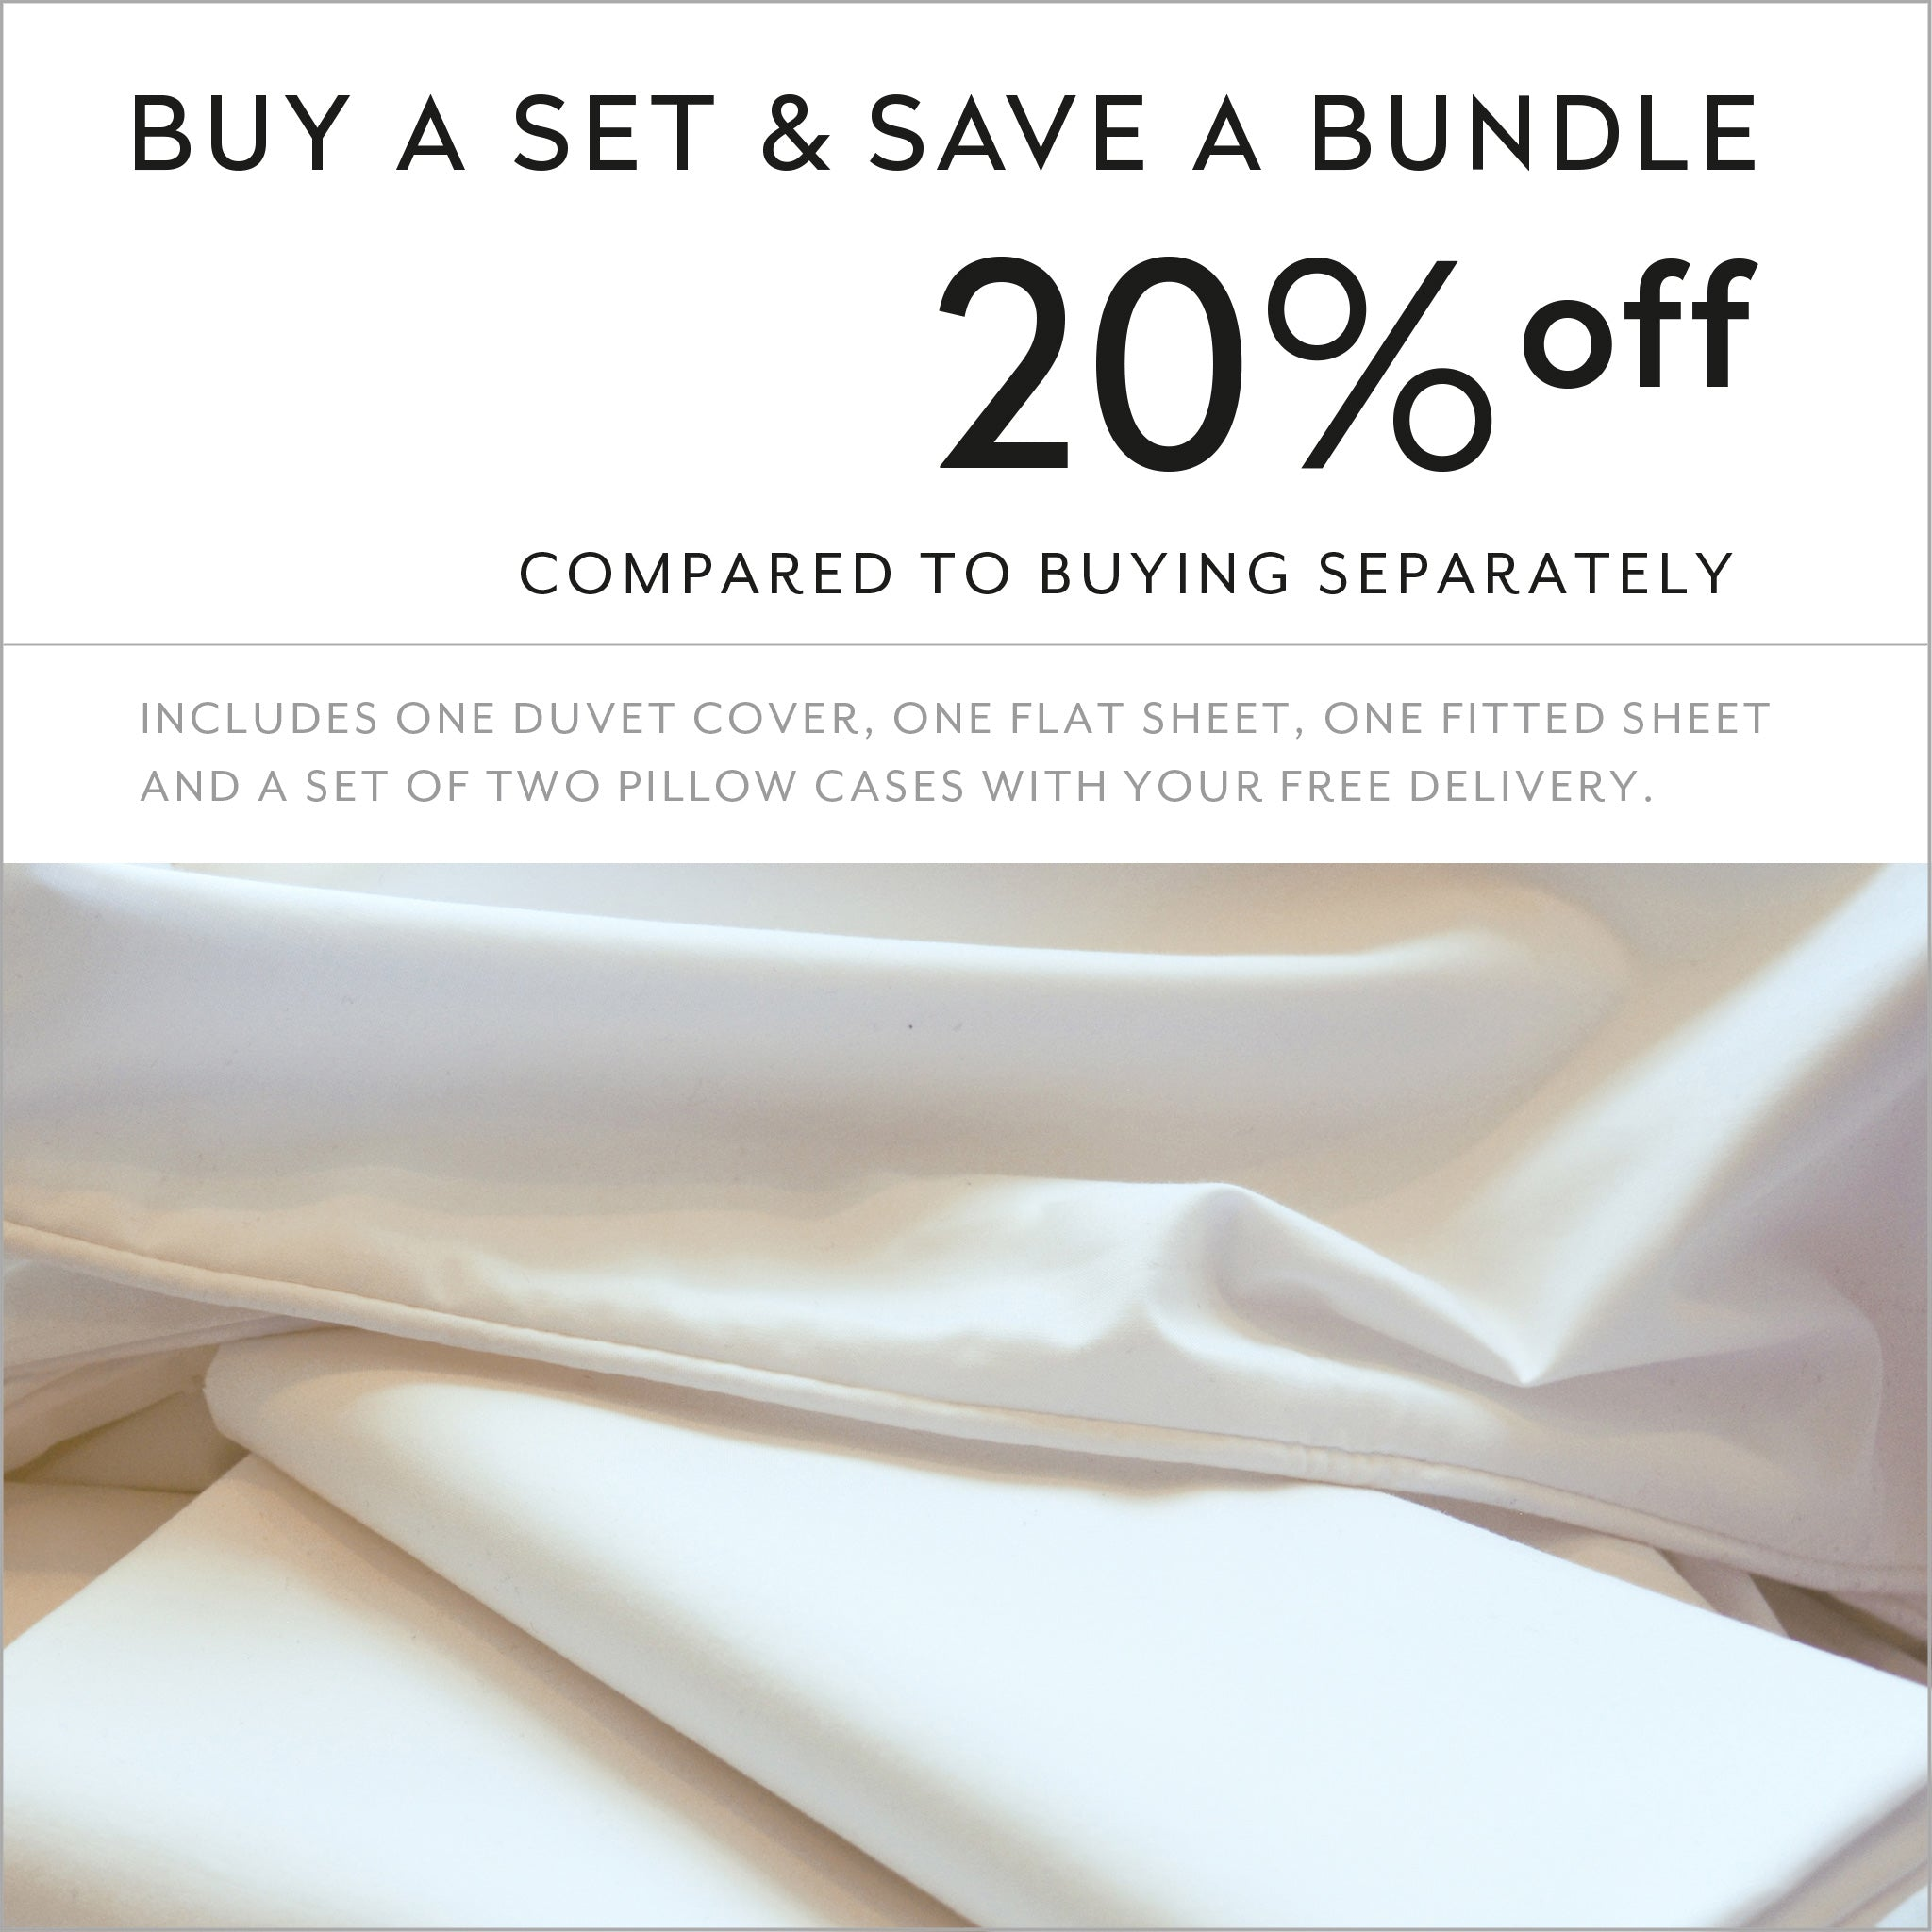 ZayZay-luxury-linen-sets-save-a-bundle-Untouched-Snow